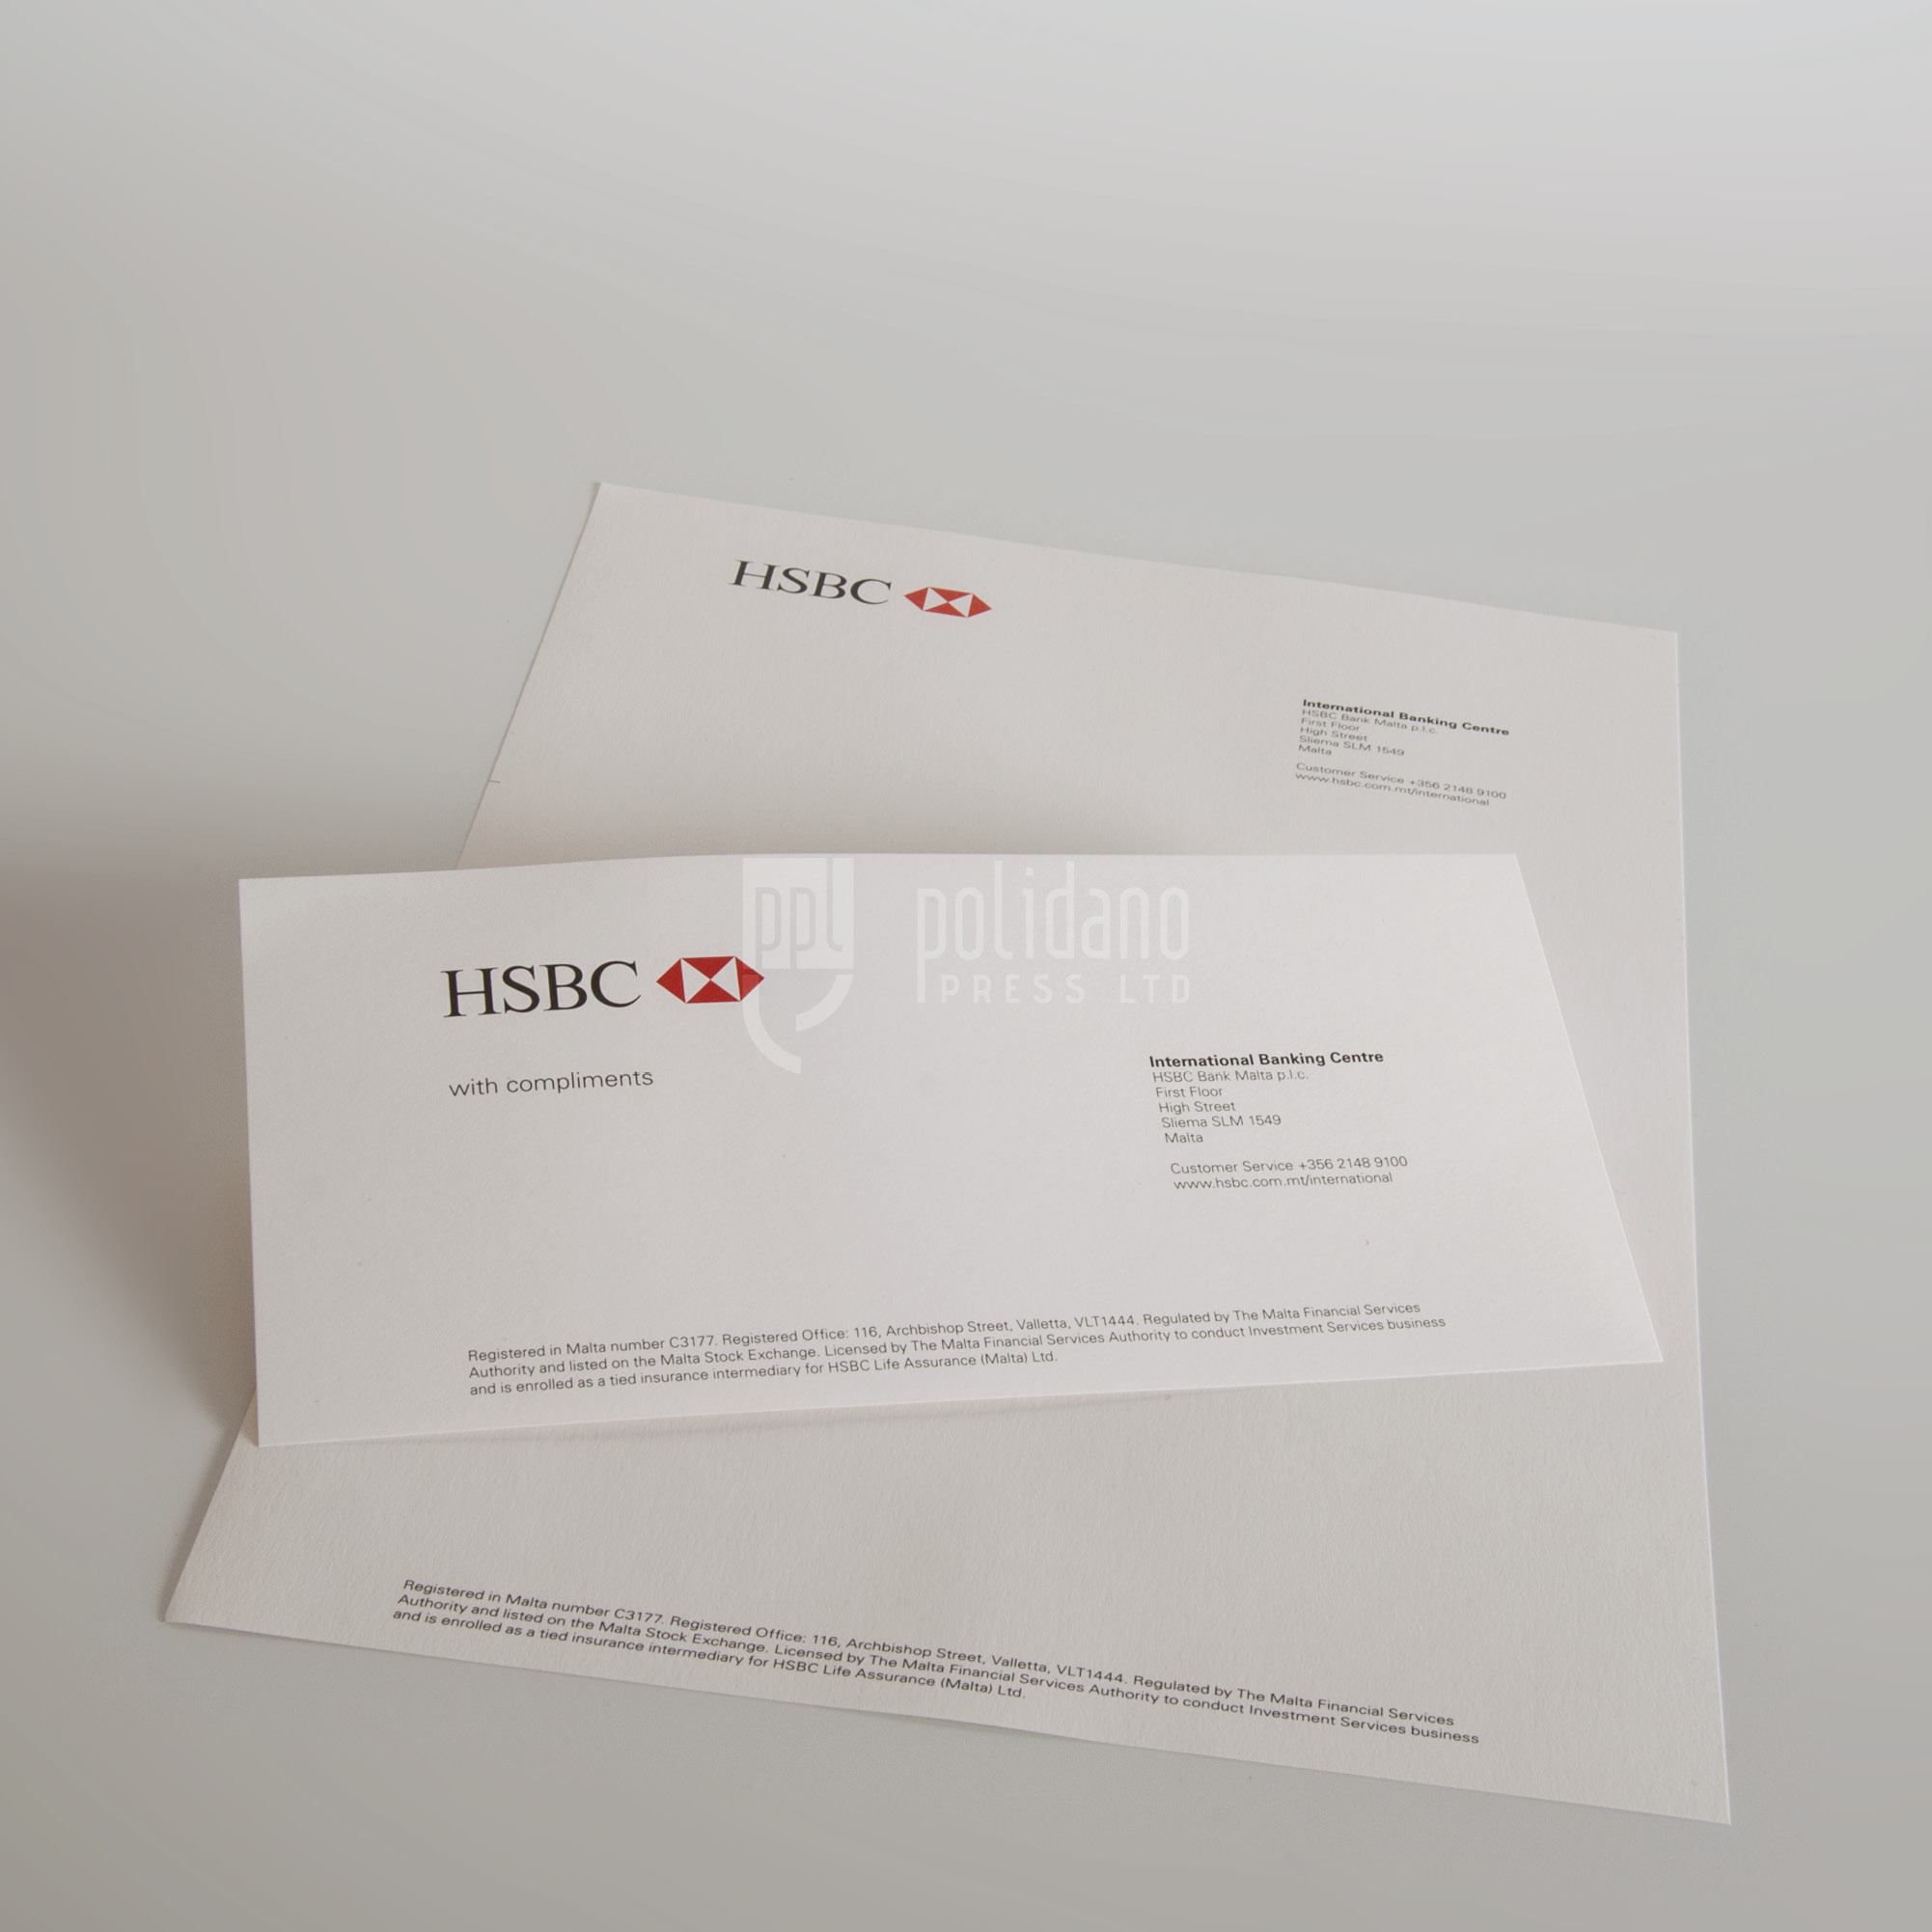 HSBC stationery